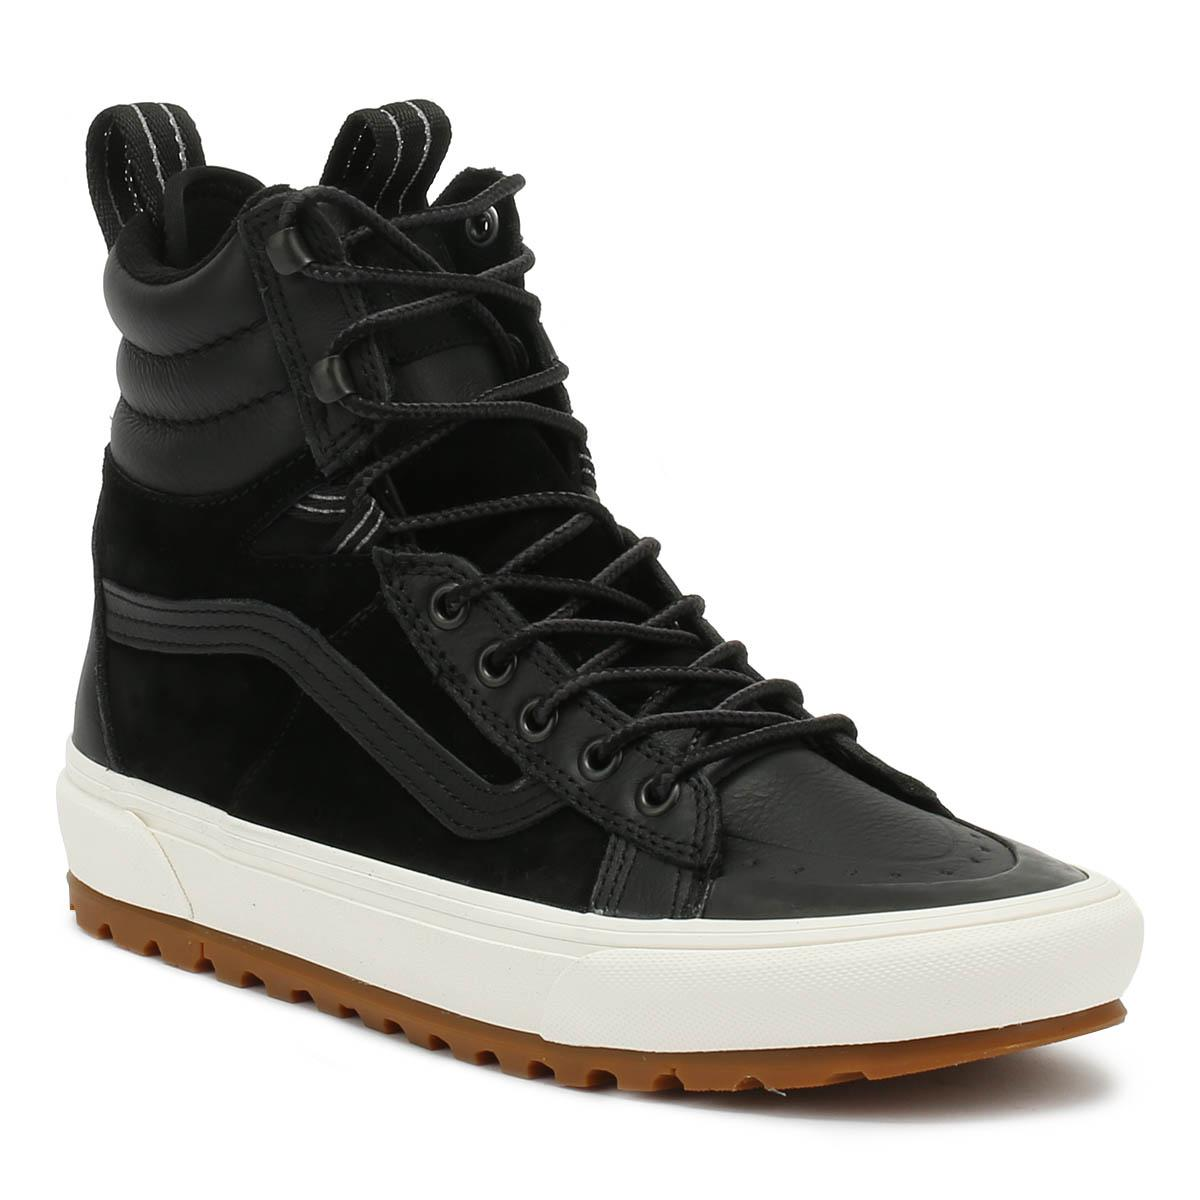 popular brand really cheap free delivery Sk8-hi Mte Dx Black Boots